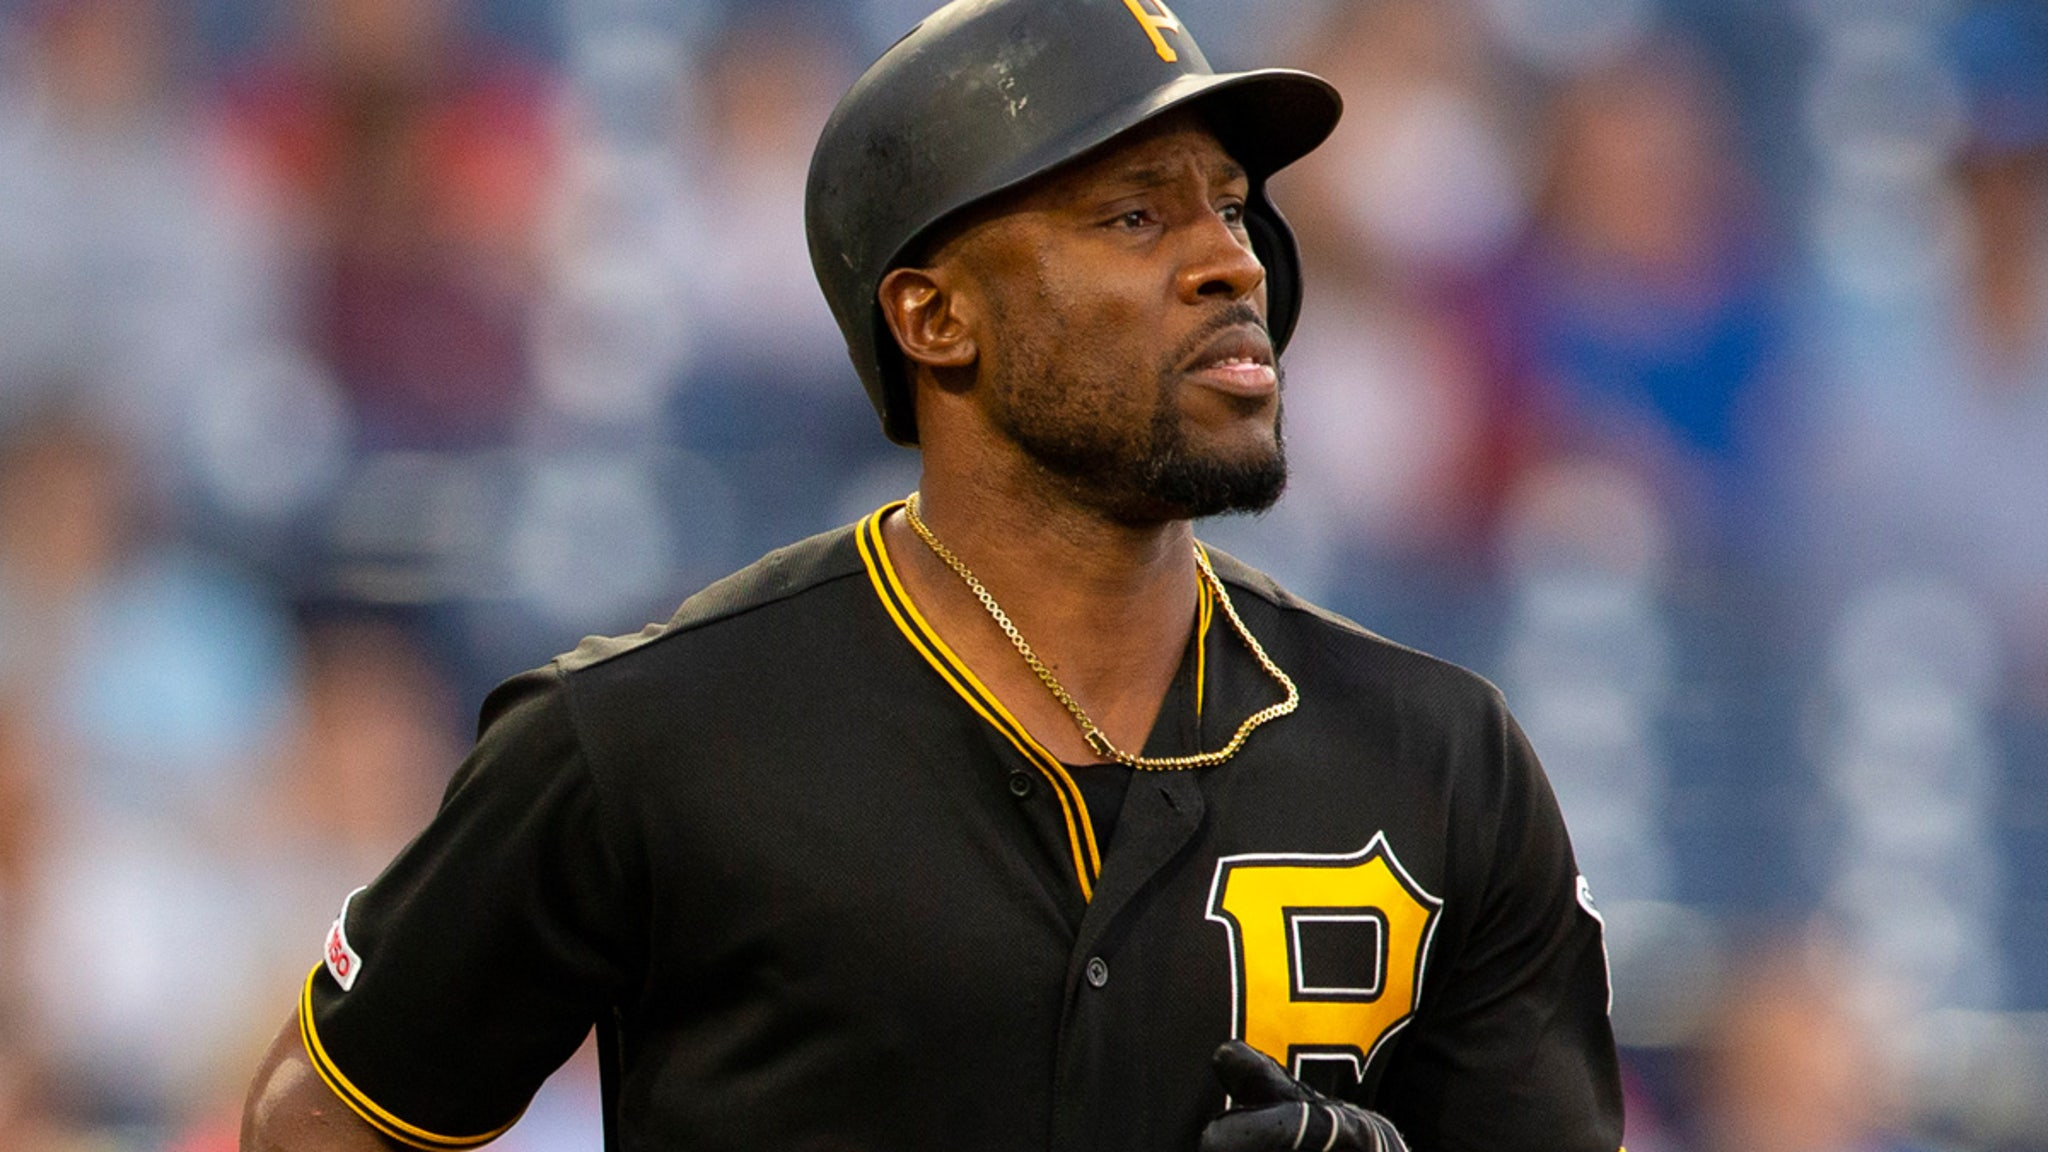 MLB's Starling Marte Says Wife Died From Heart Attack, 'Indescribable Pain'